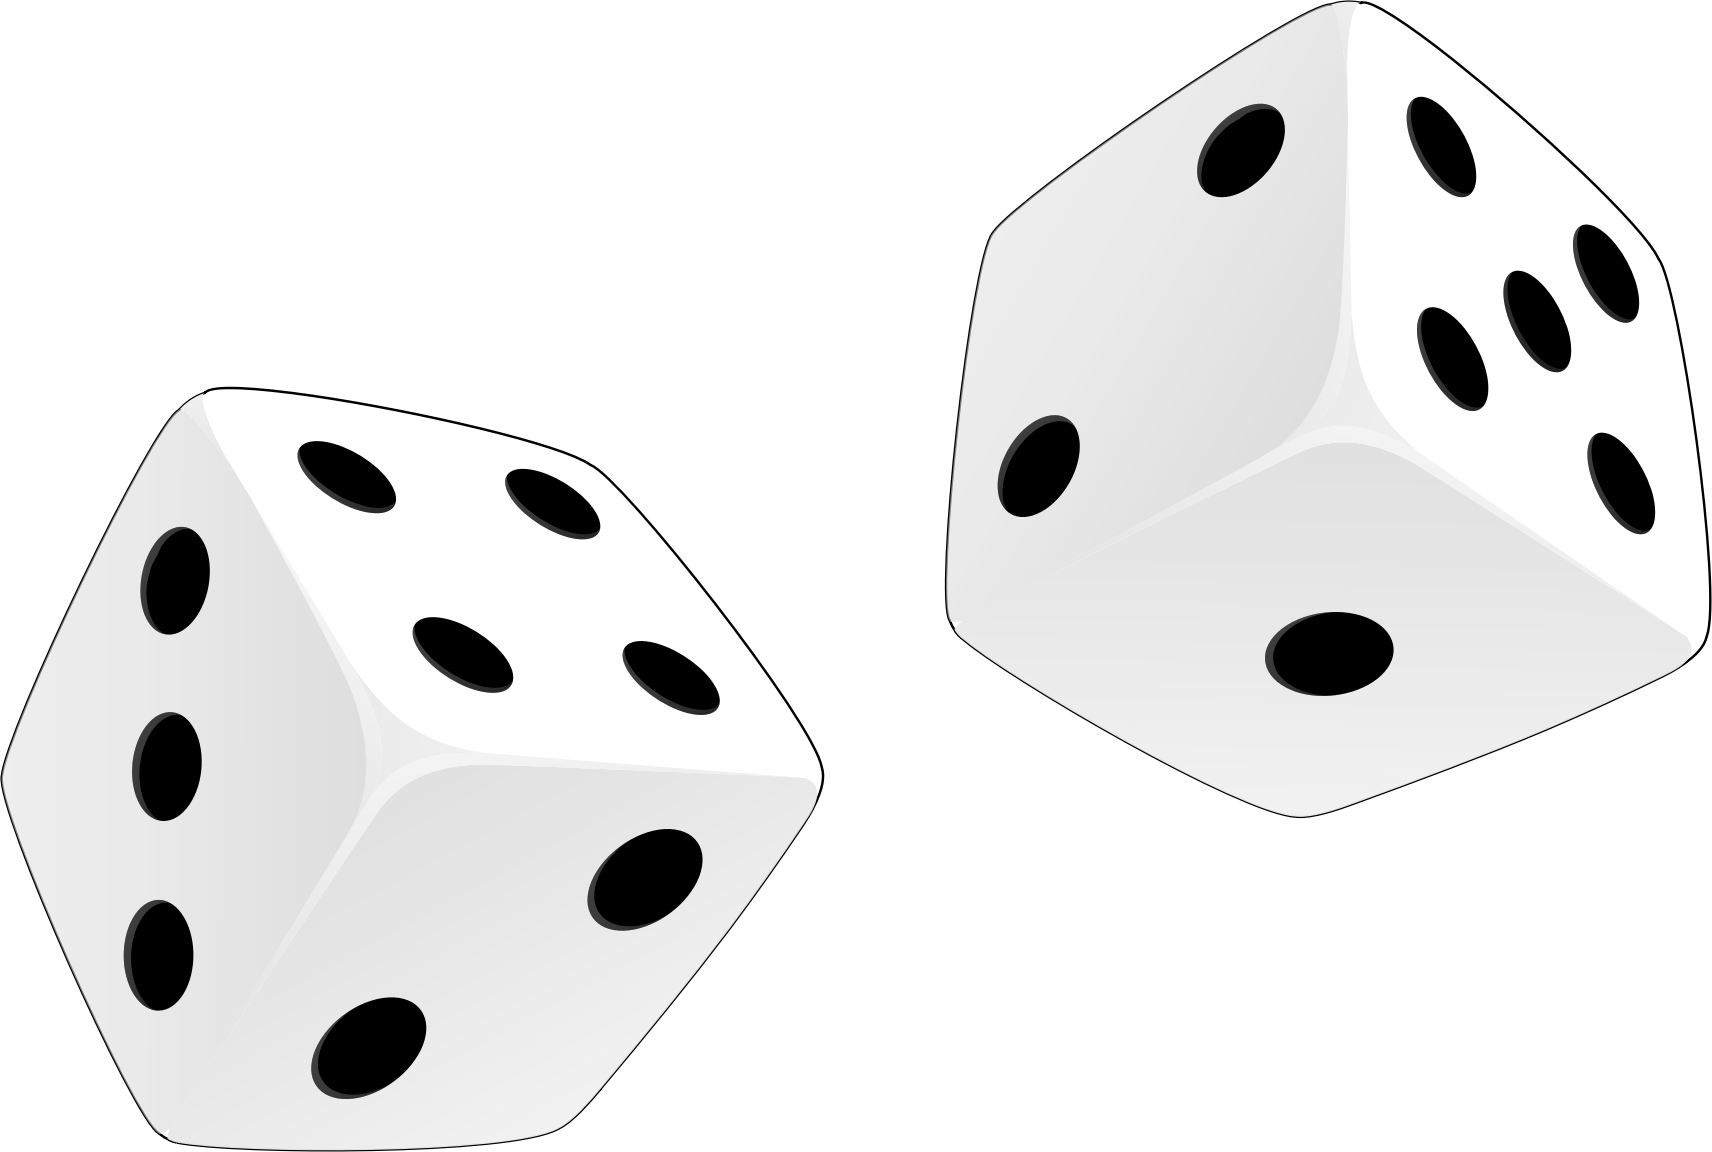 Dice by casino